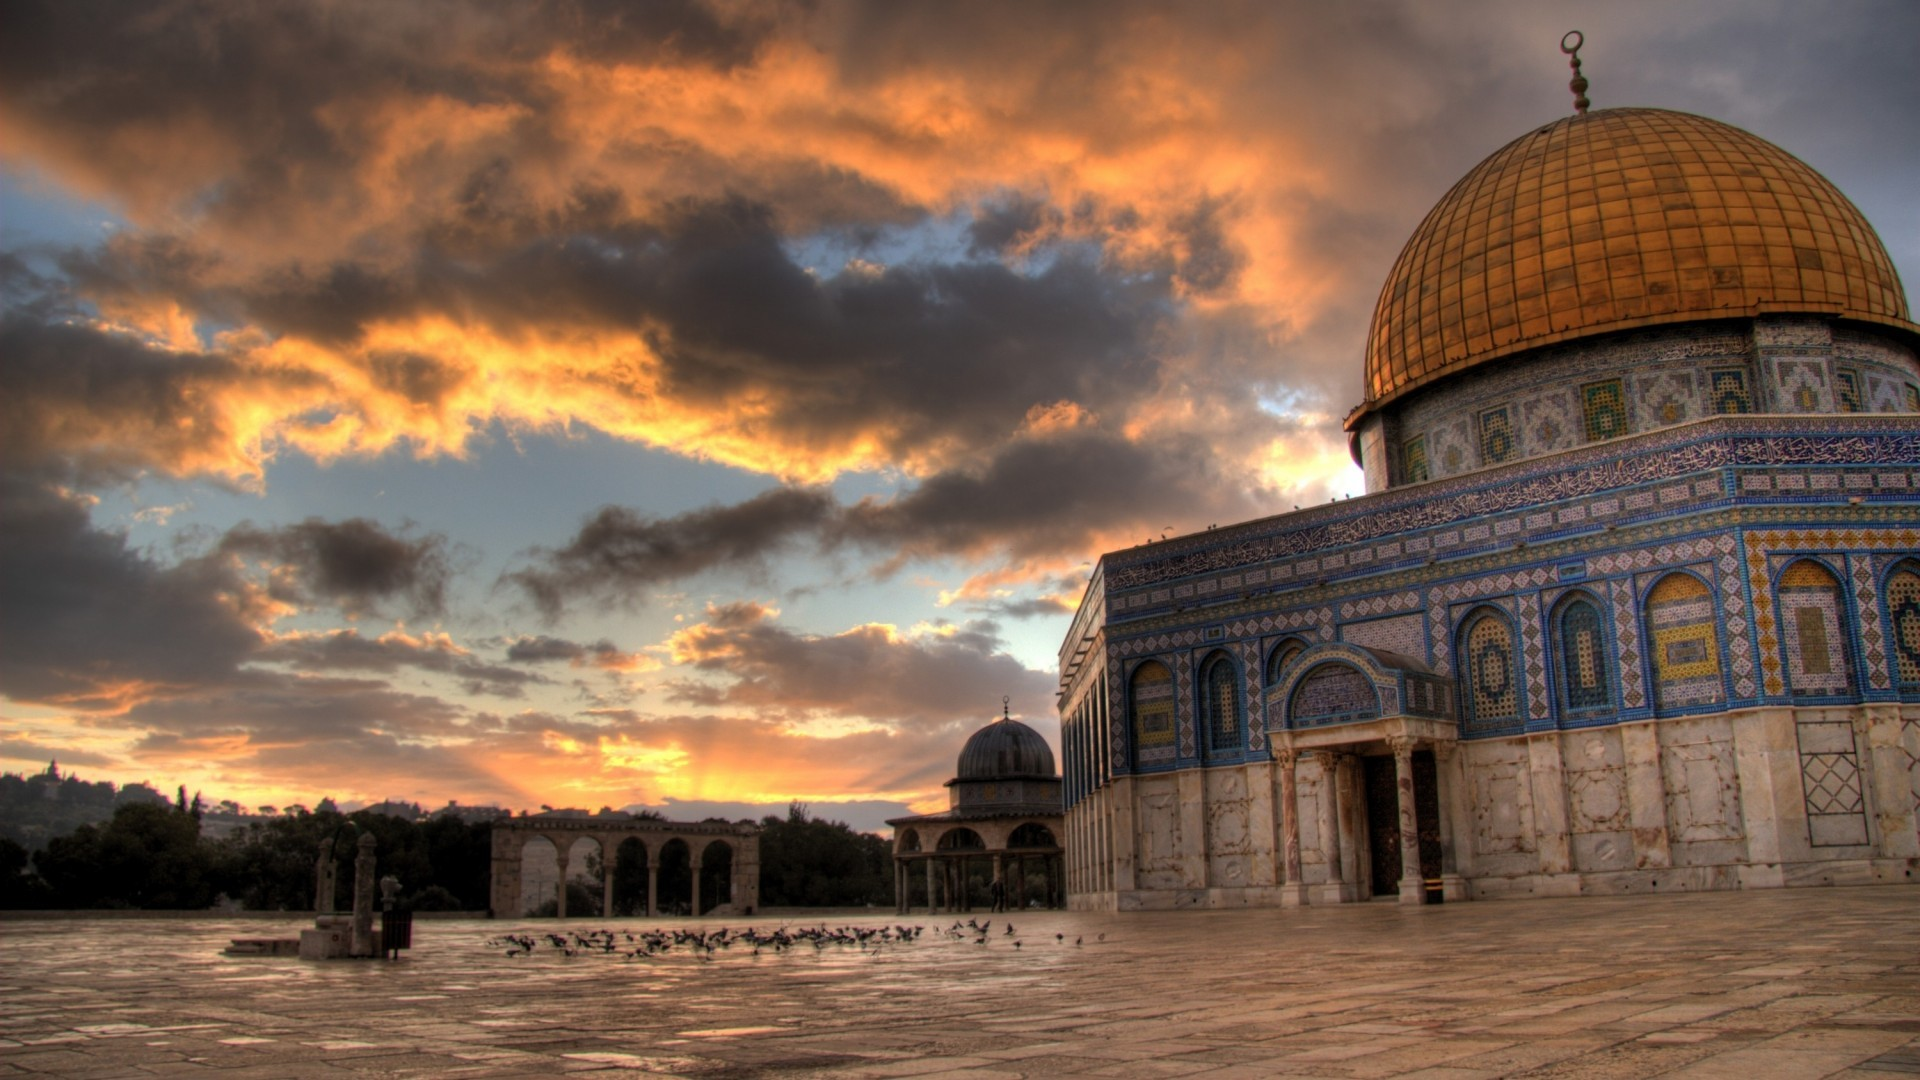 Religious-dome-rock-jerusalem-photography-mosque-islamic-mosques-al-aqsa-clouds-tard-pegions-dual-mo